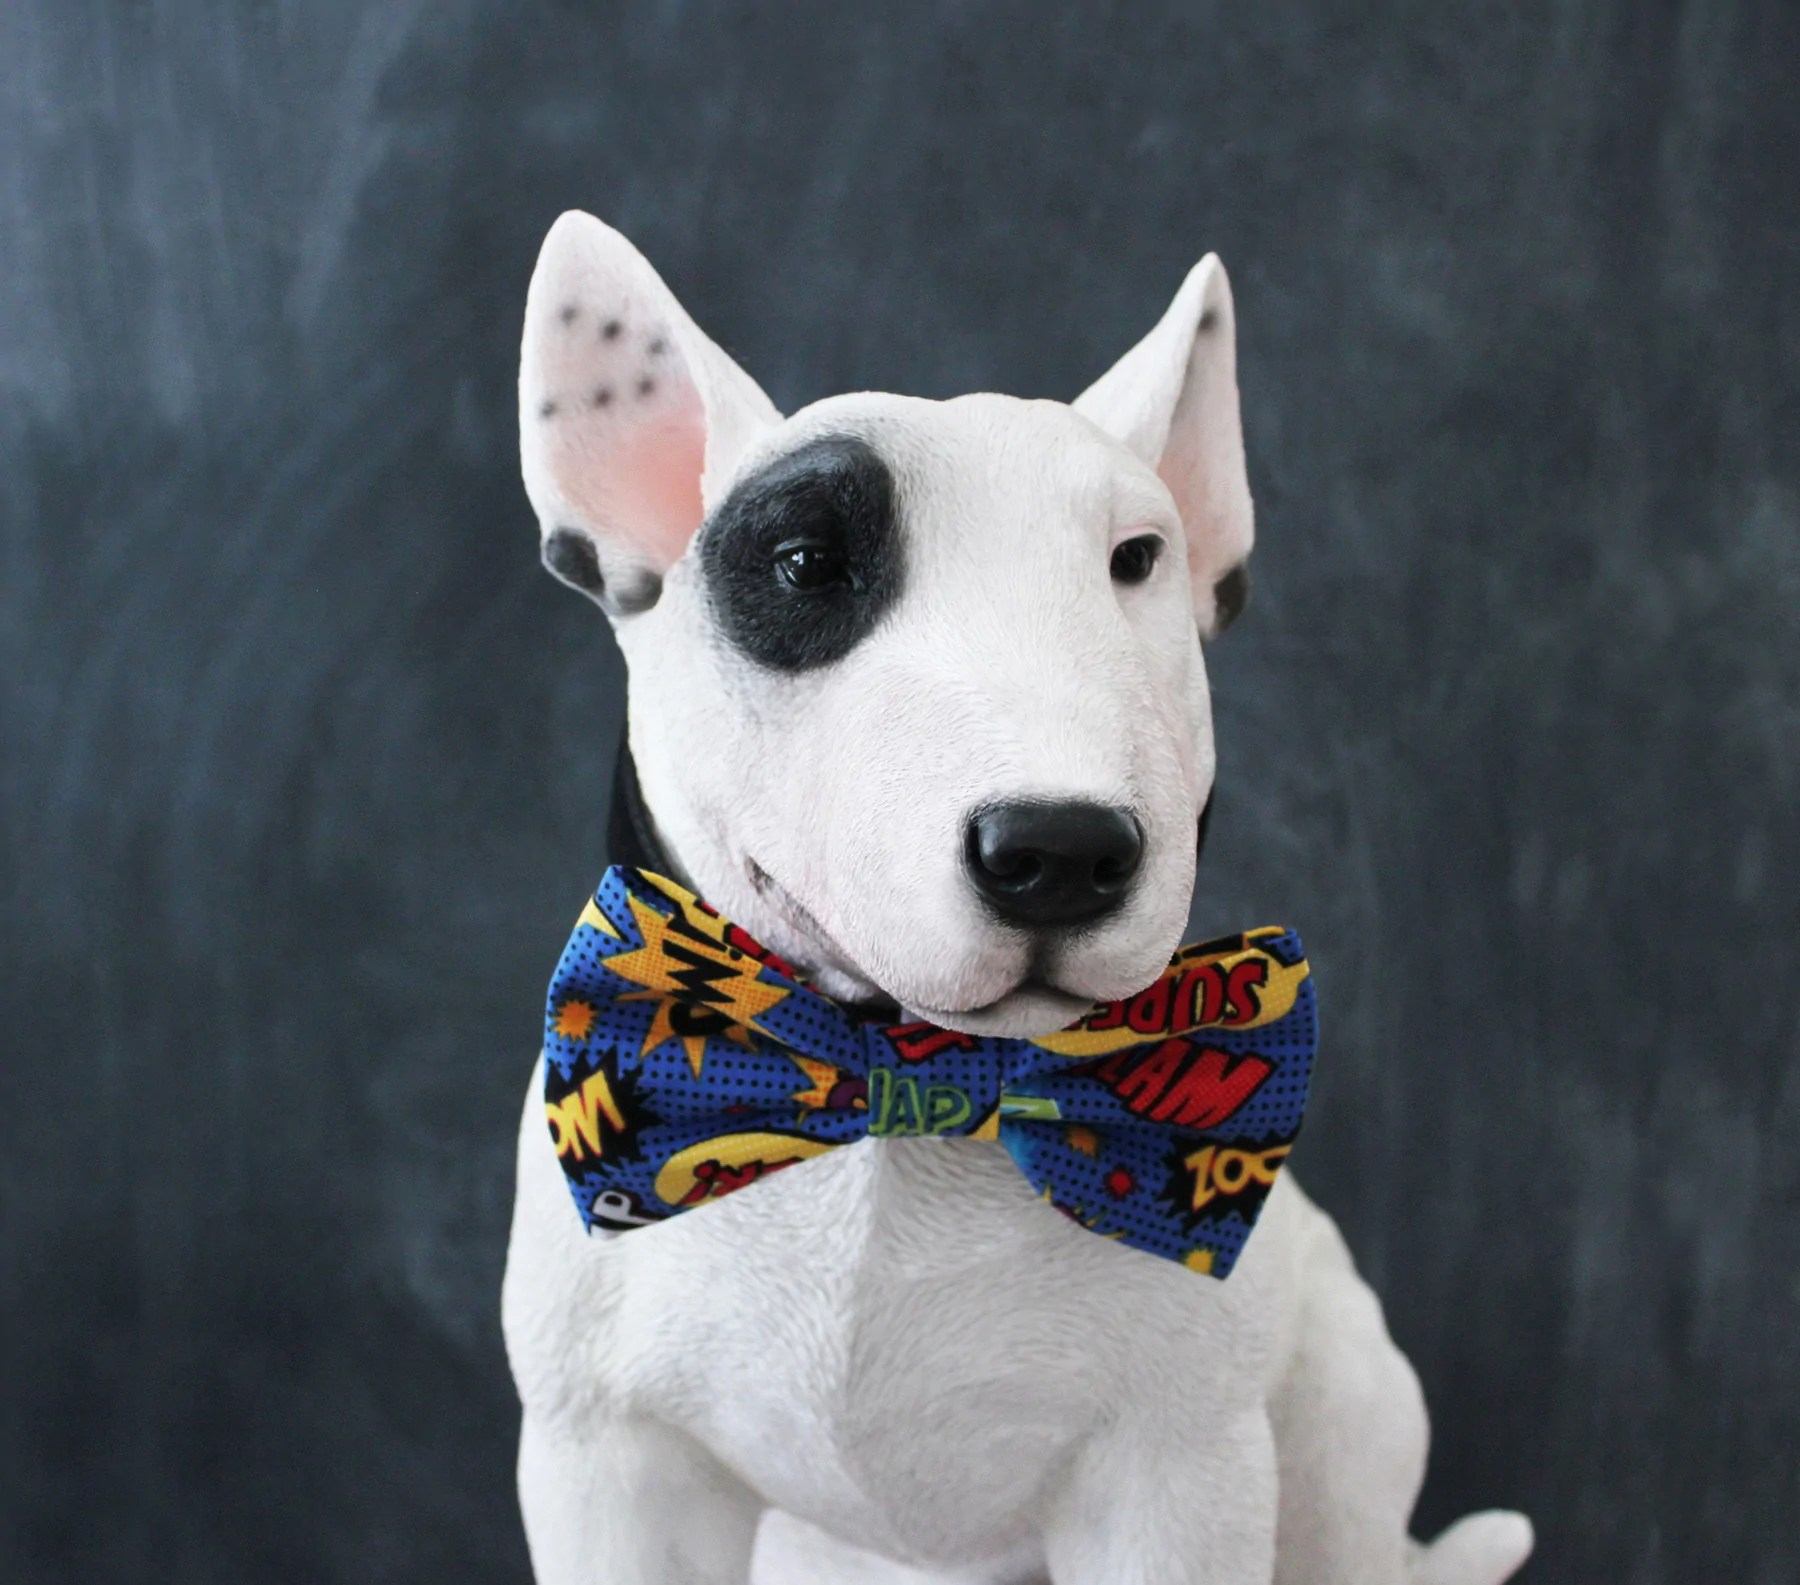 Inspirational Leash Comic Actions Dog Bow Tie Comic Actions Dog Bow Tie You Had Me At Woof Dog Bow Tie Sizes Dog Bow Tie bark post Dog Bow Tie